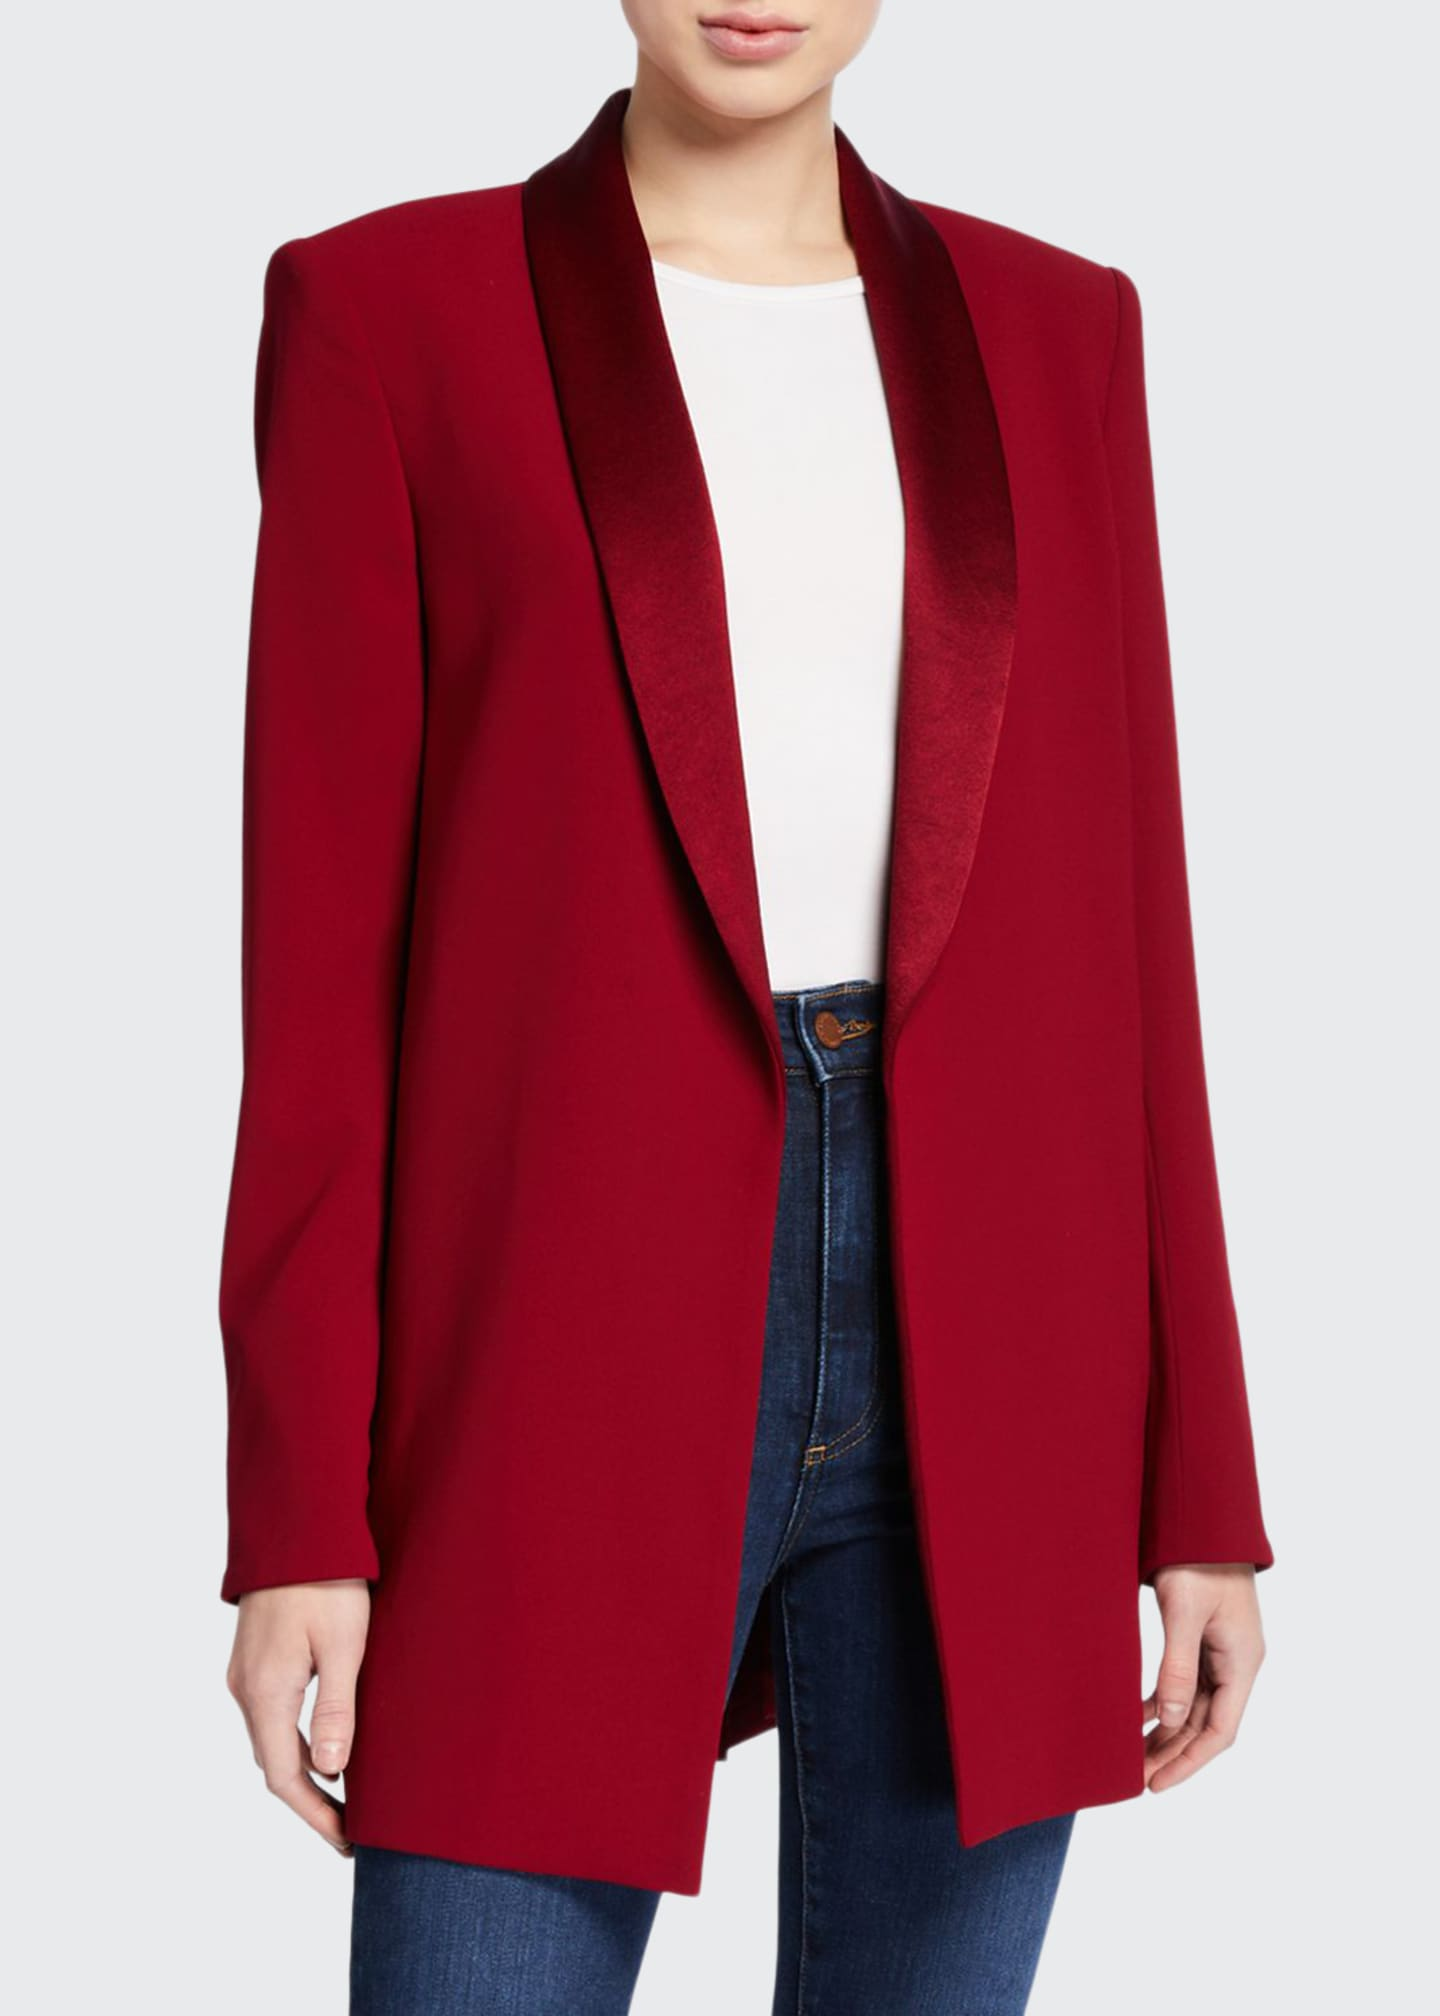 Alice + Olivia Jace Strong-Shoulder Oversized Blazer